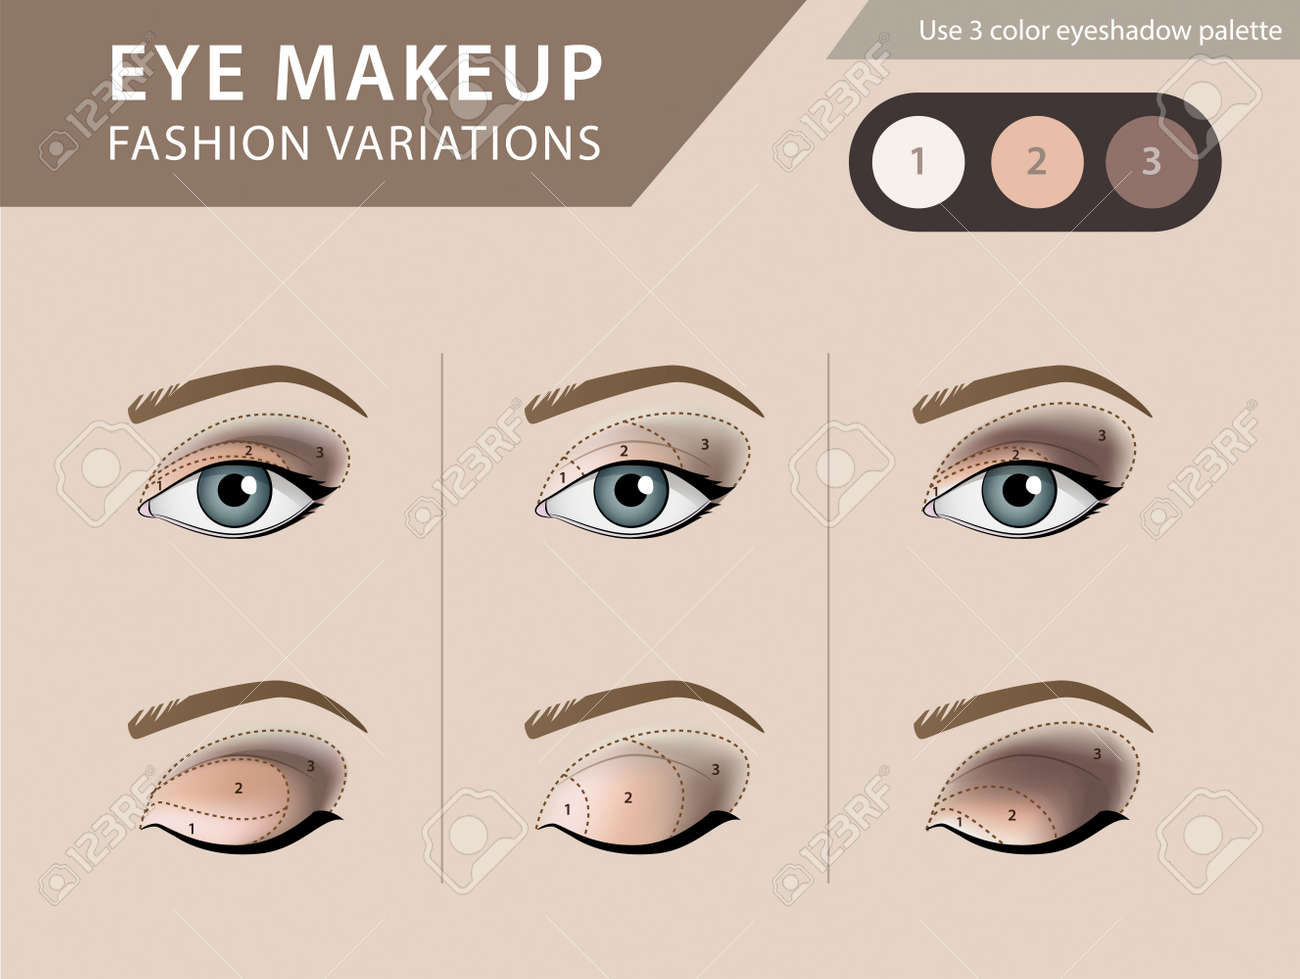 Eye Makeup Tutorial Eyeshadow Vector Template Royalty Free Cliparts - Eyeshadow template